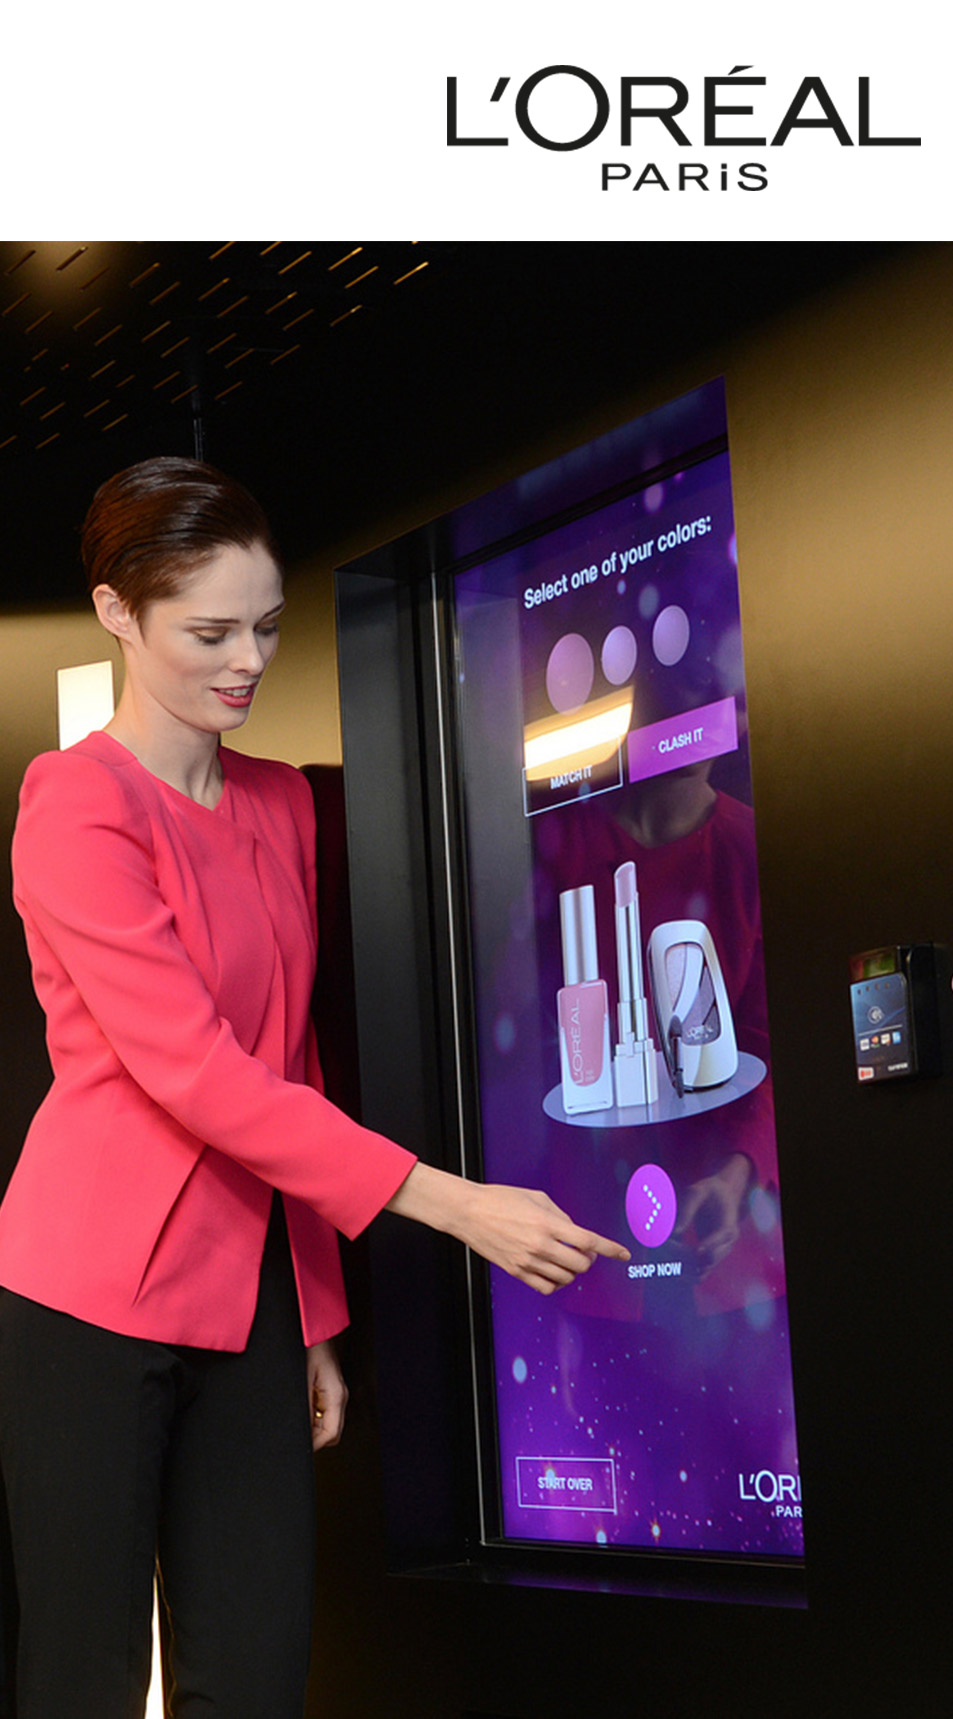 Envisioning, Grounding and Activating the Future of Retail